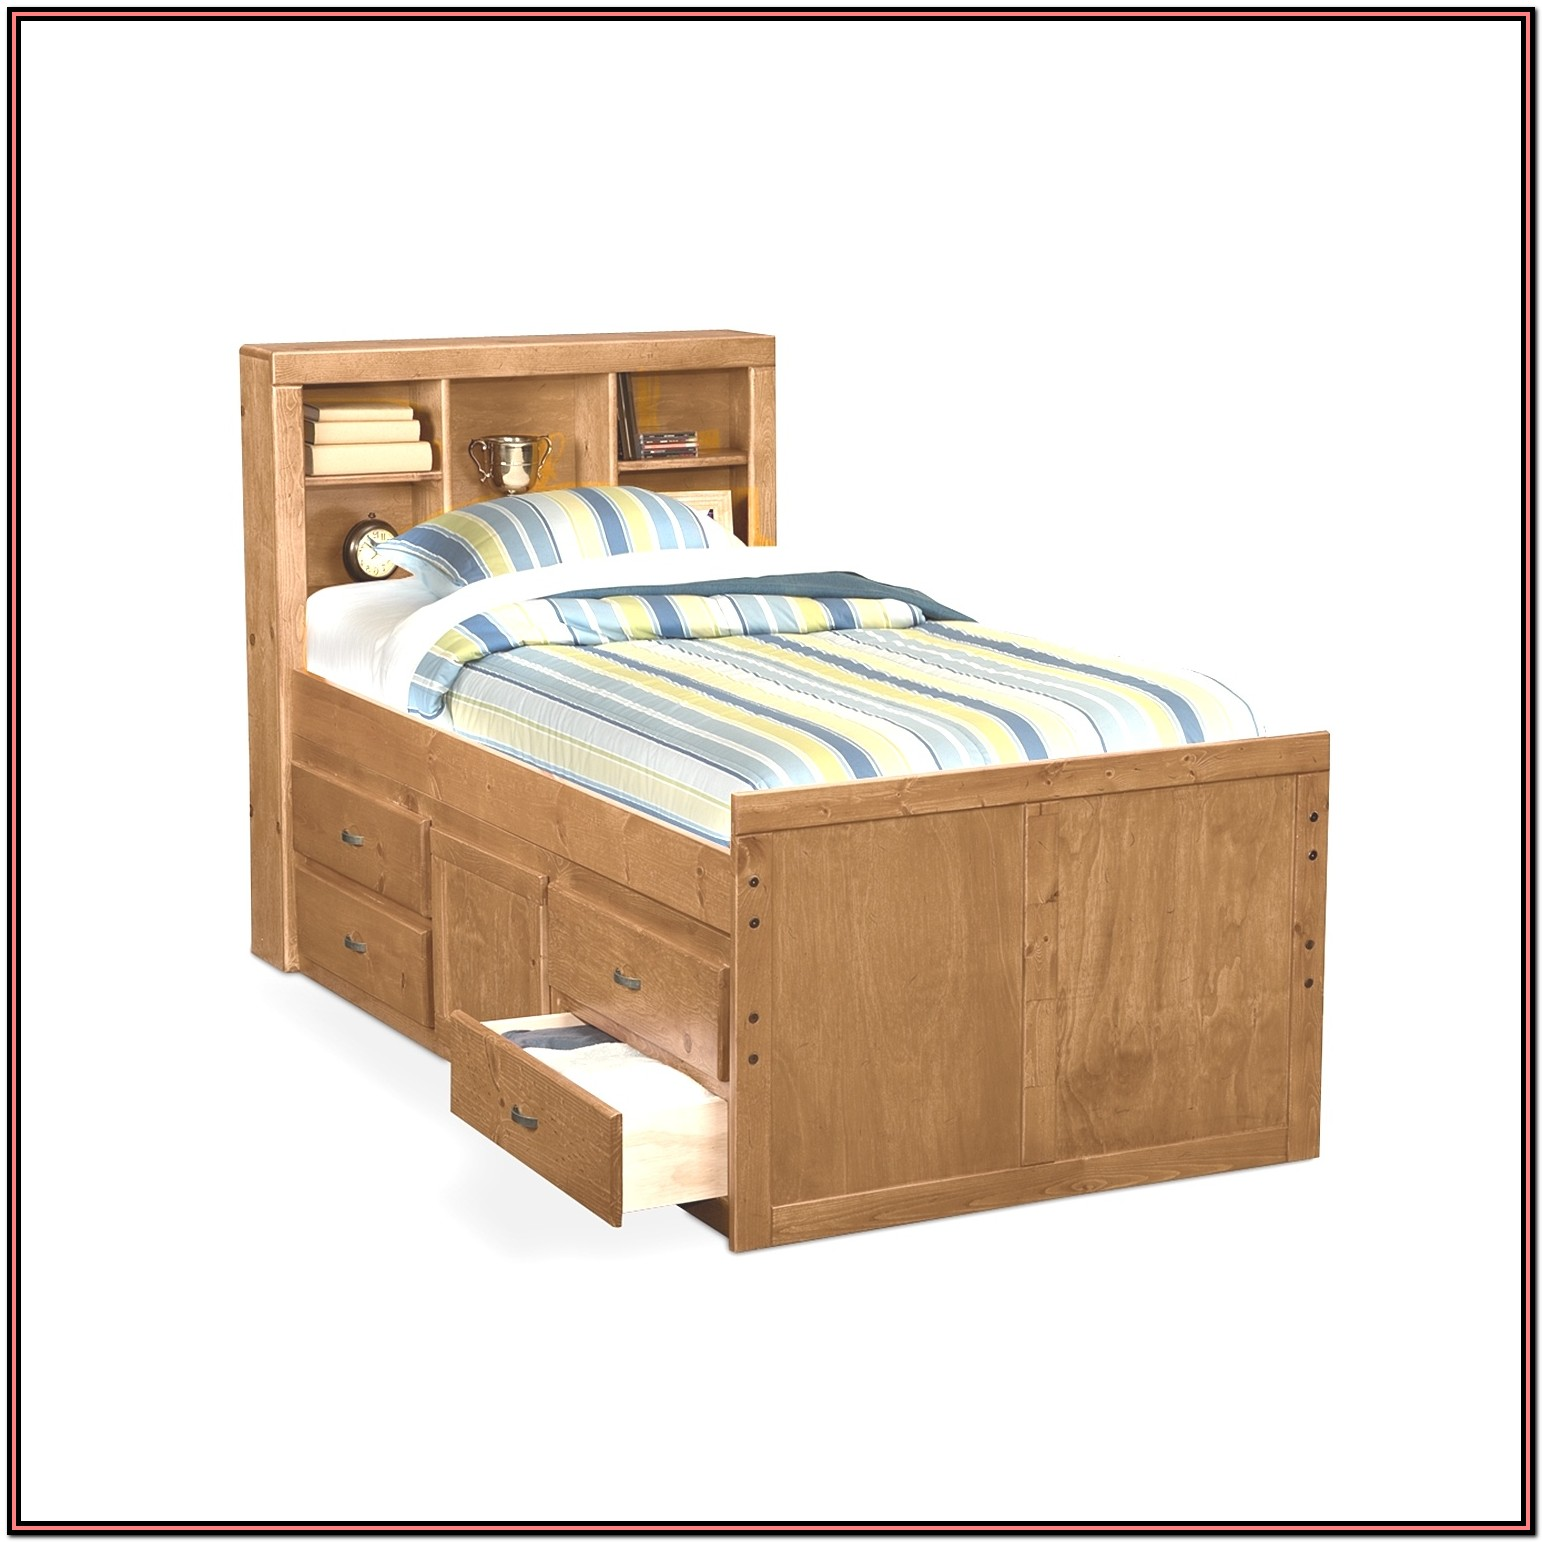 King Platform Bed Frame With Storage Plans